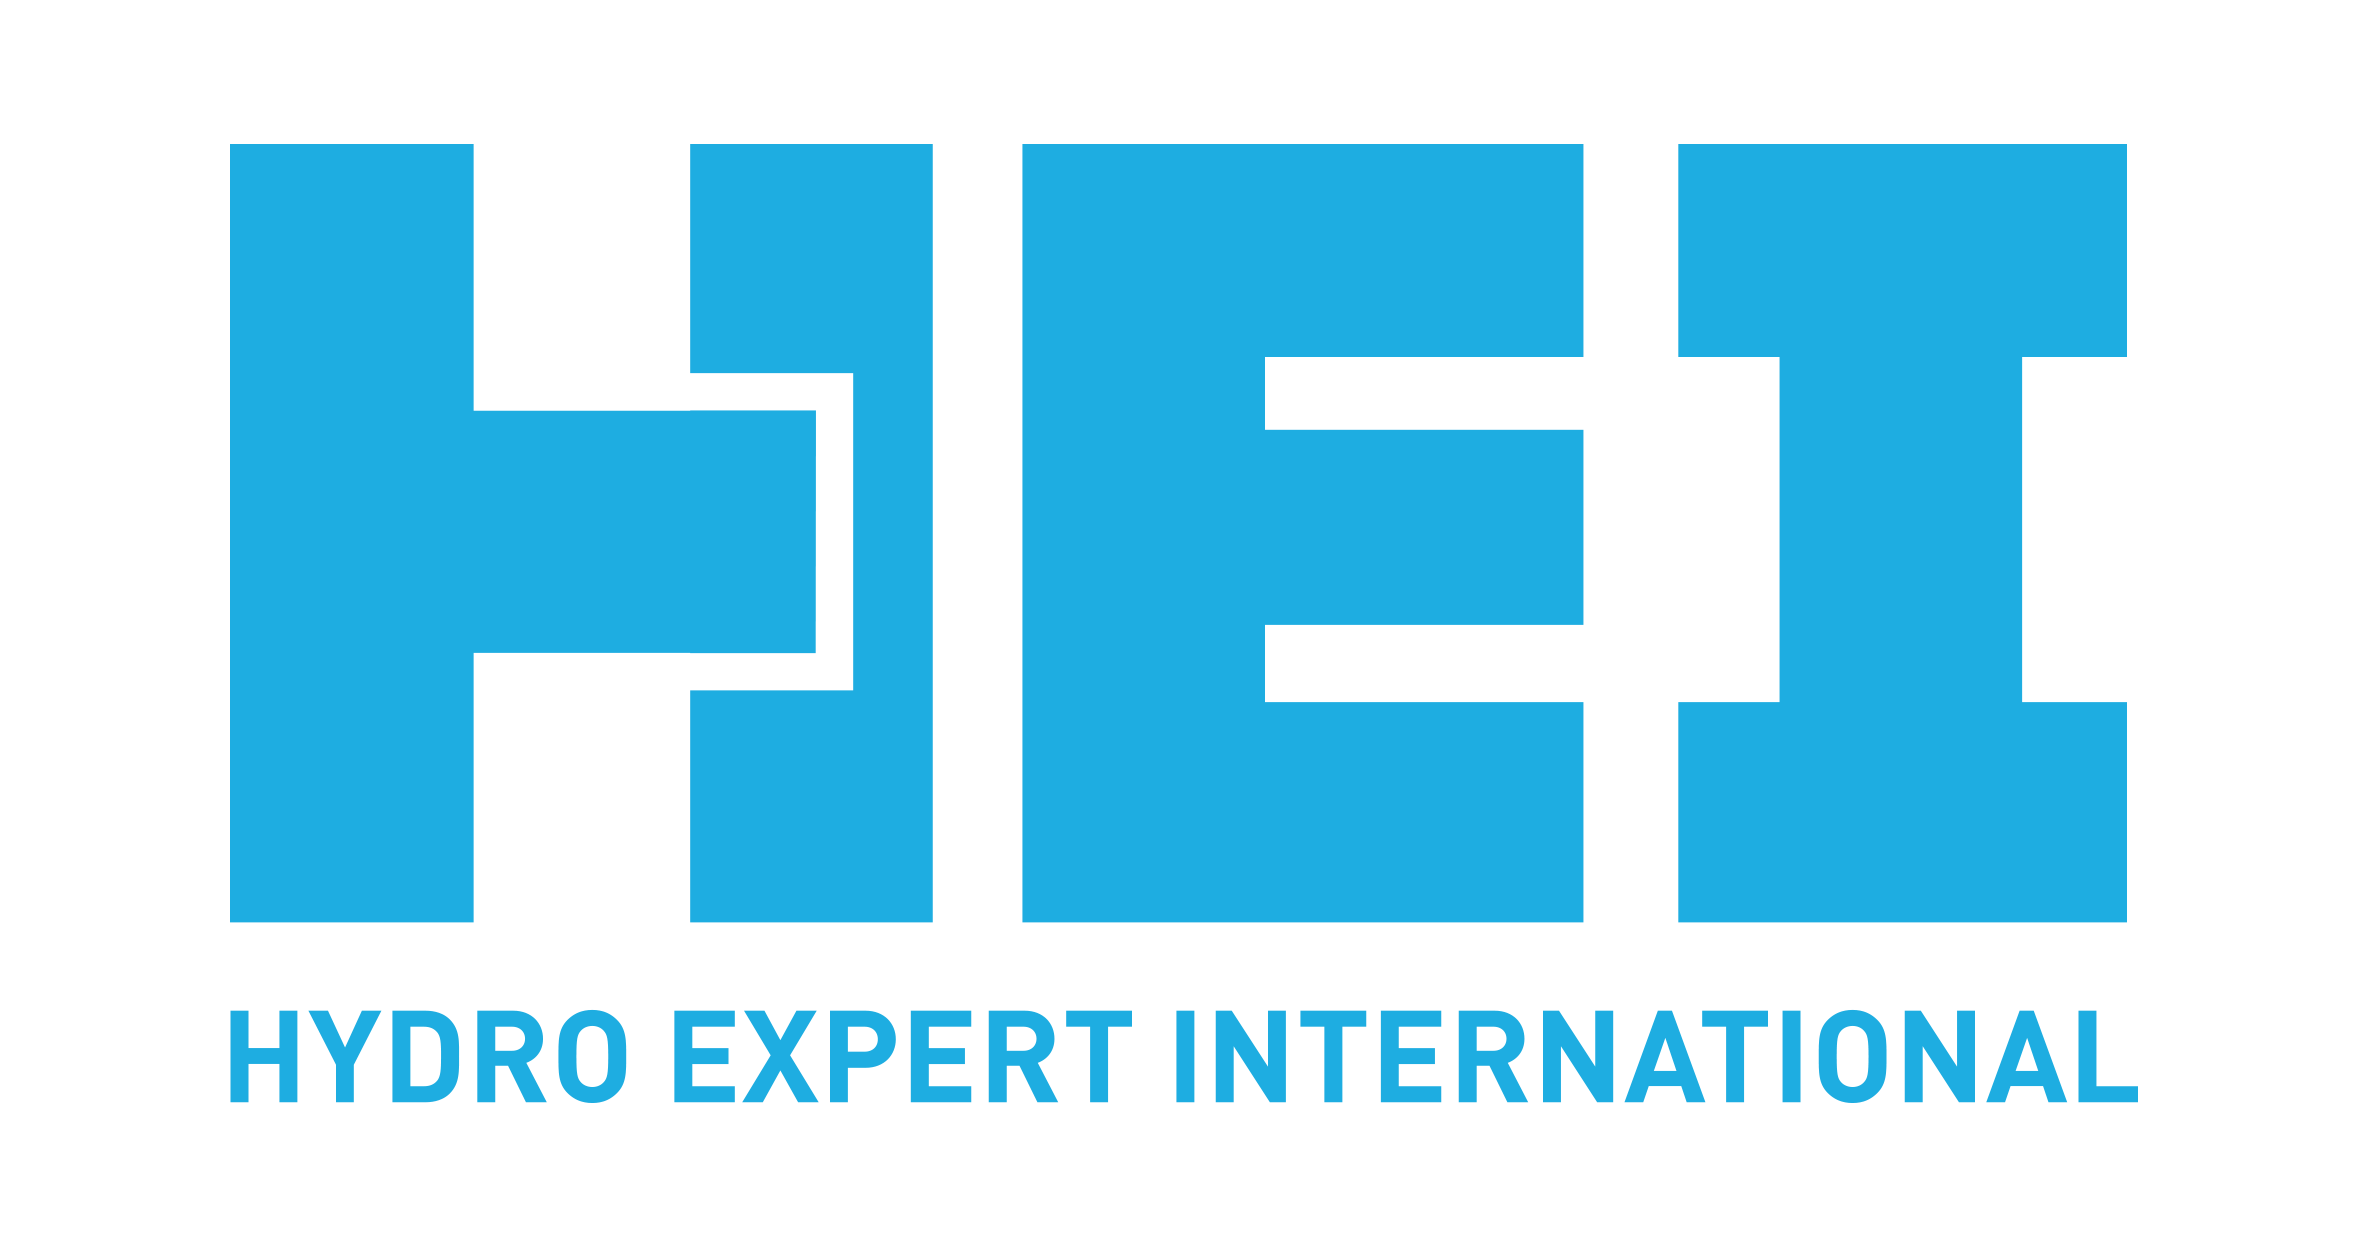 Logo HEI - Hydro Expert International Tunis, expert en solutions et services hydrauliques